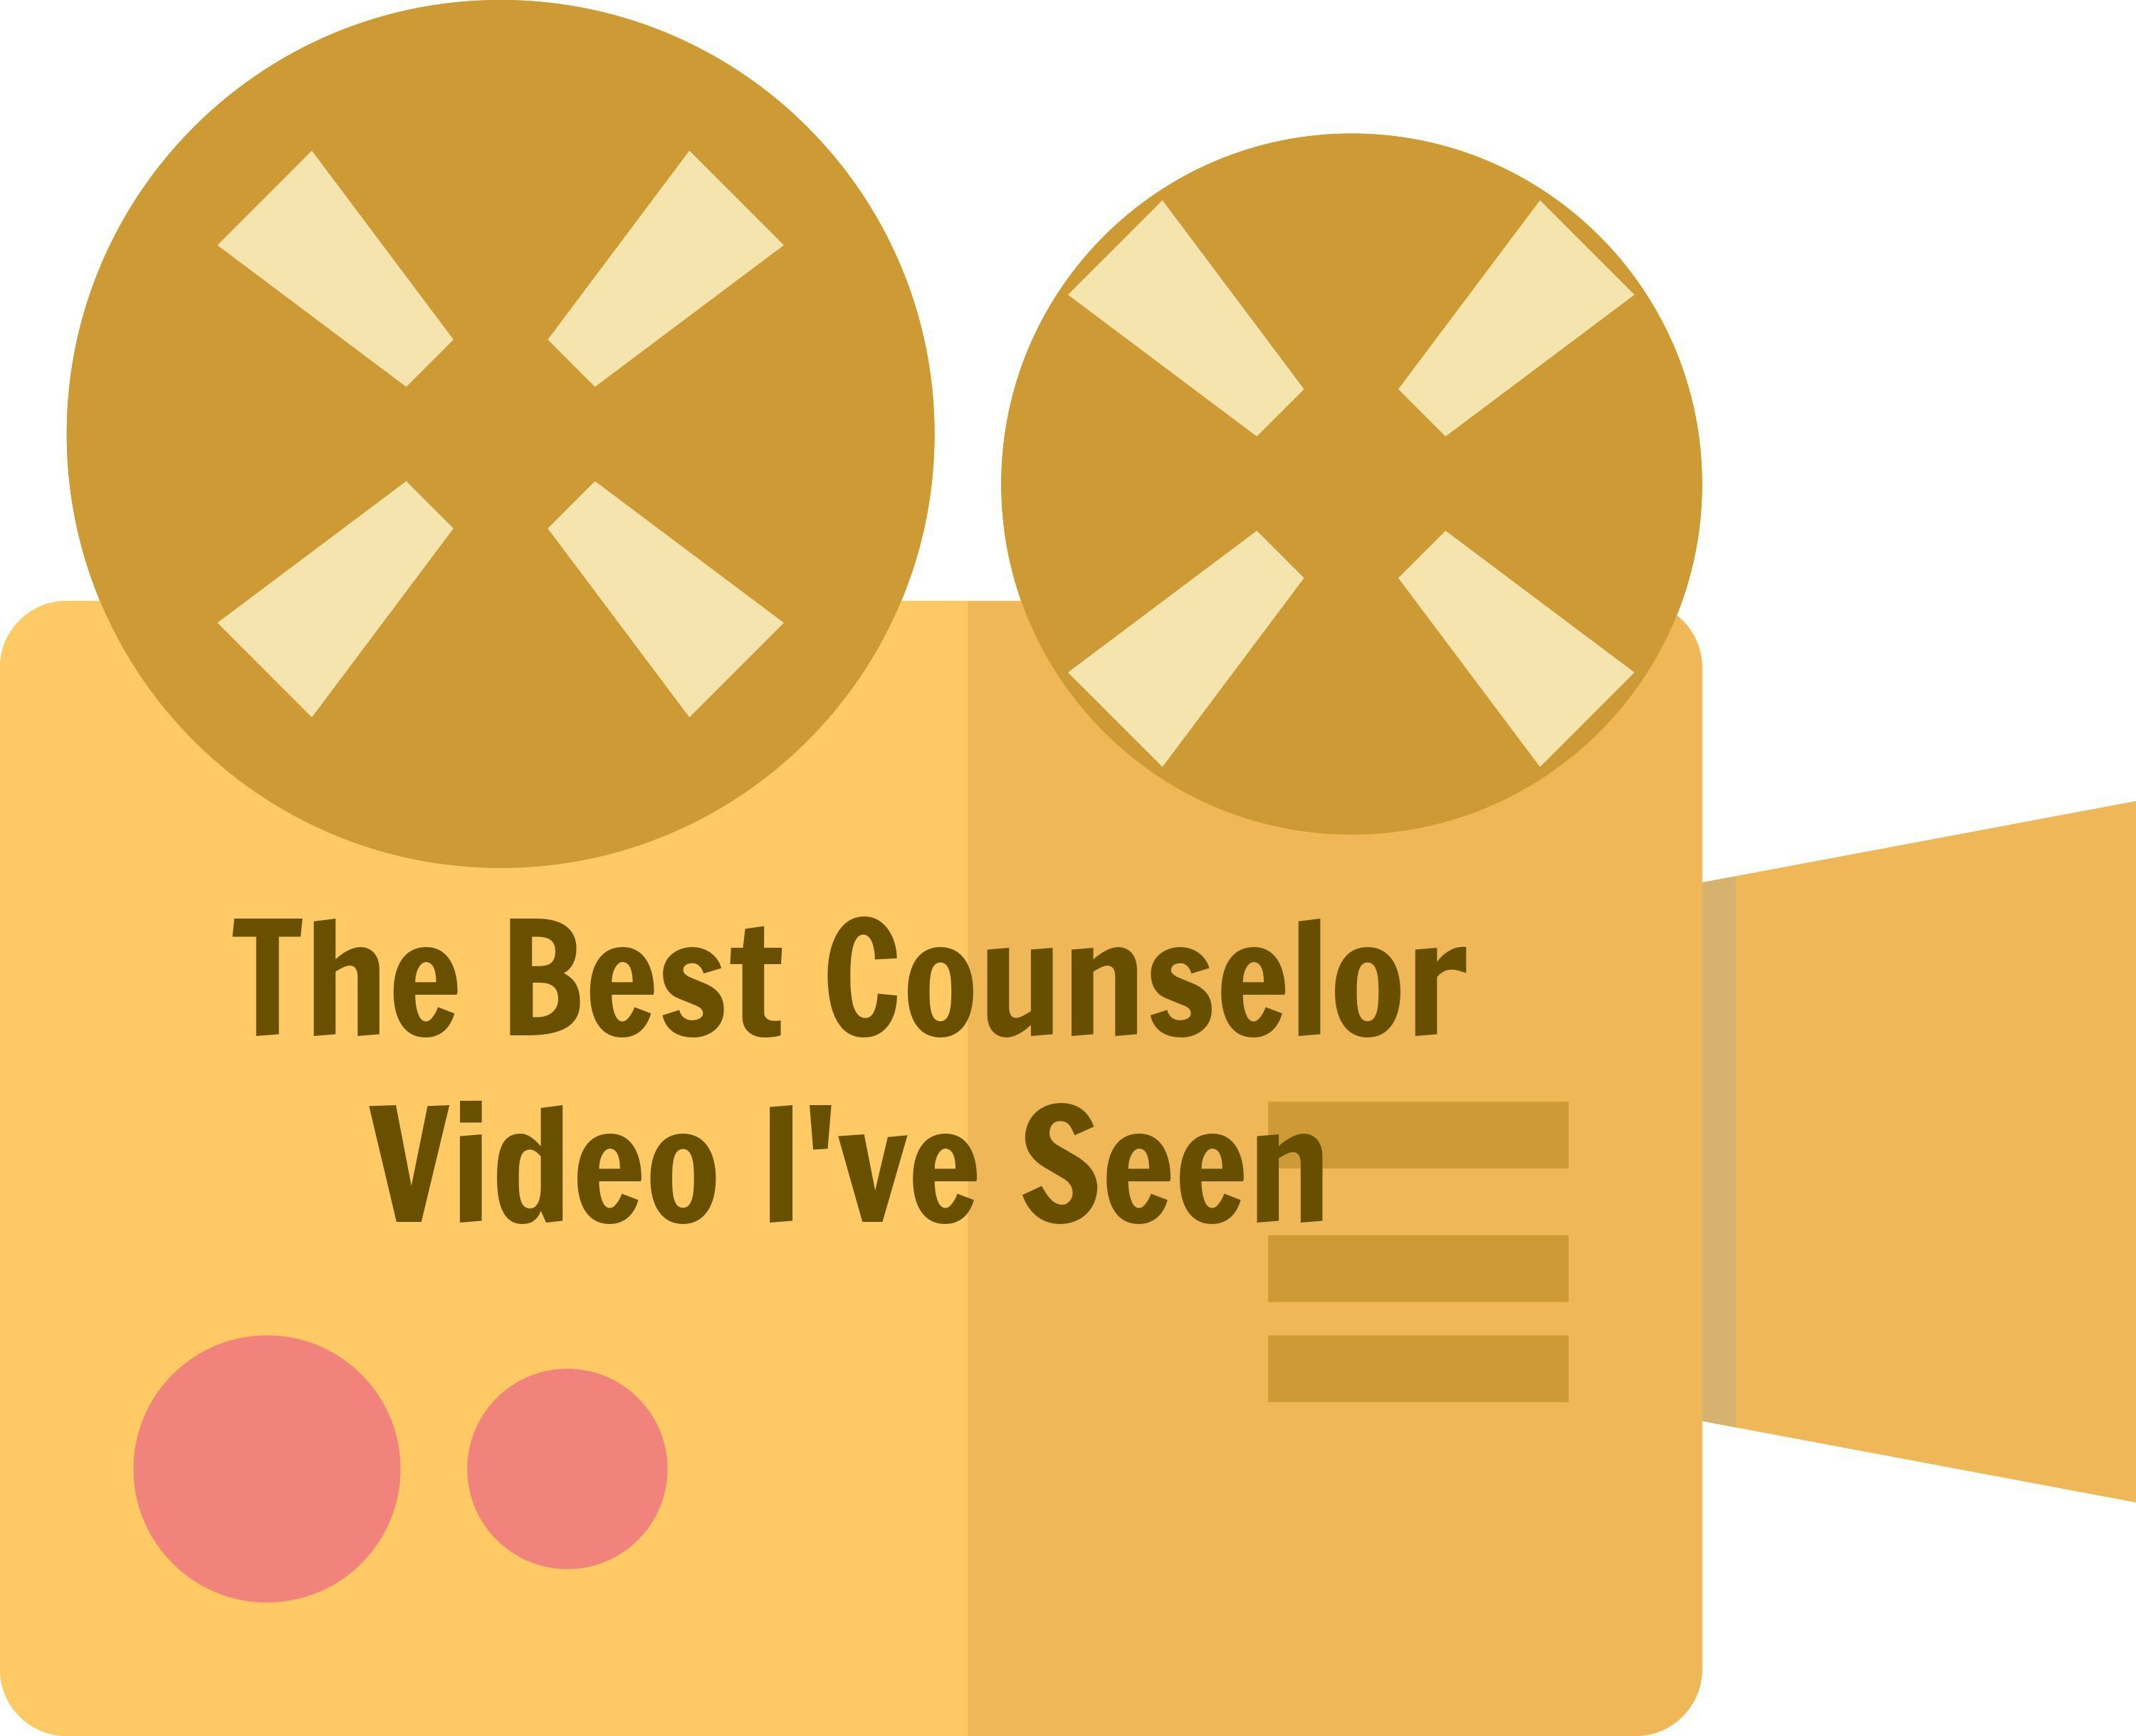 The Best Counselor Video I've Seen